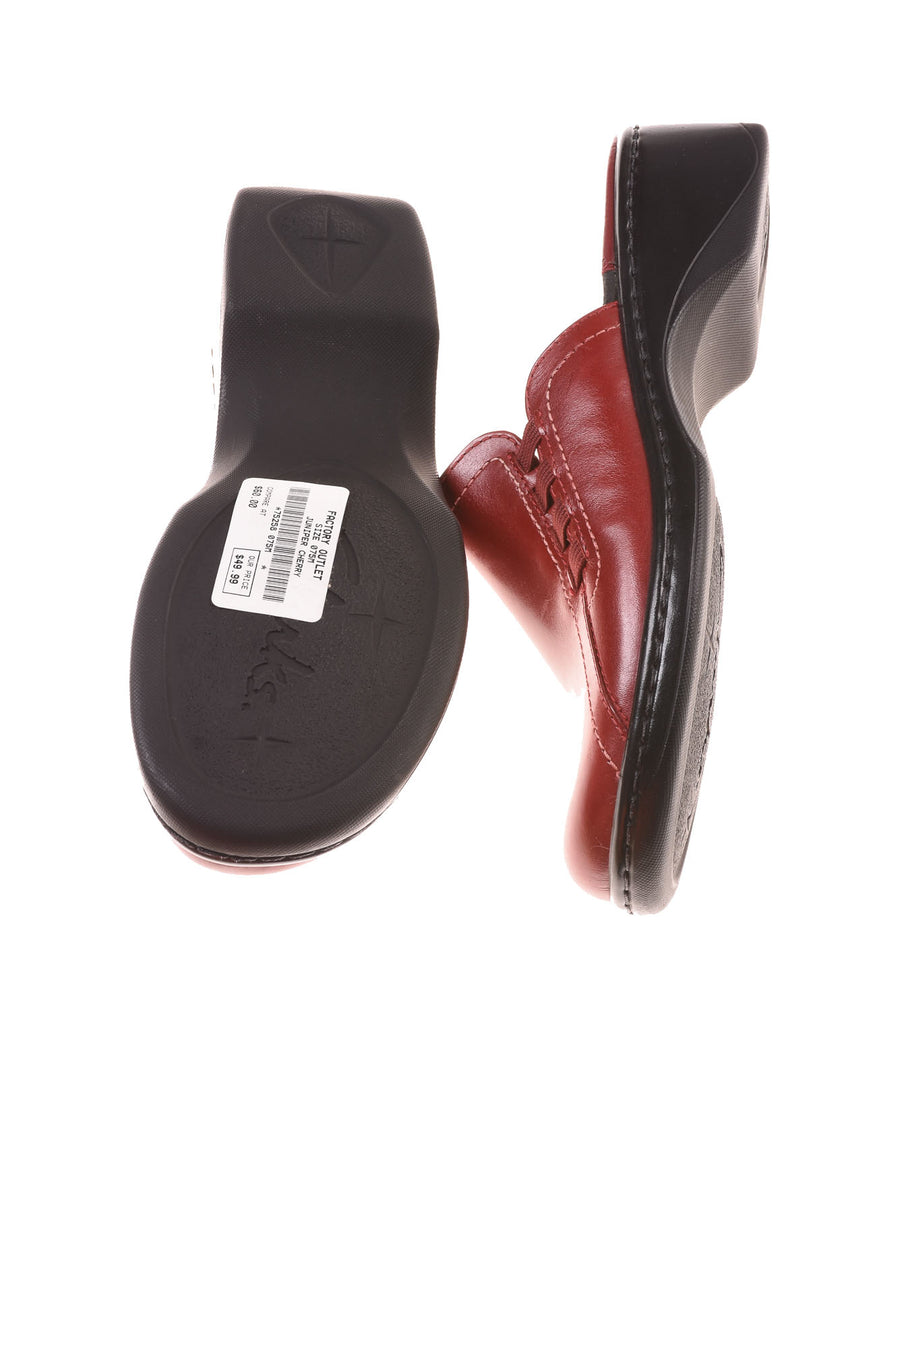 USED Clarks Women's Shoes 7.5 Cherry Juniper